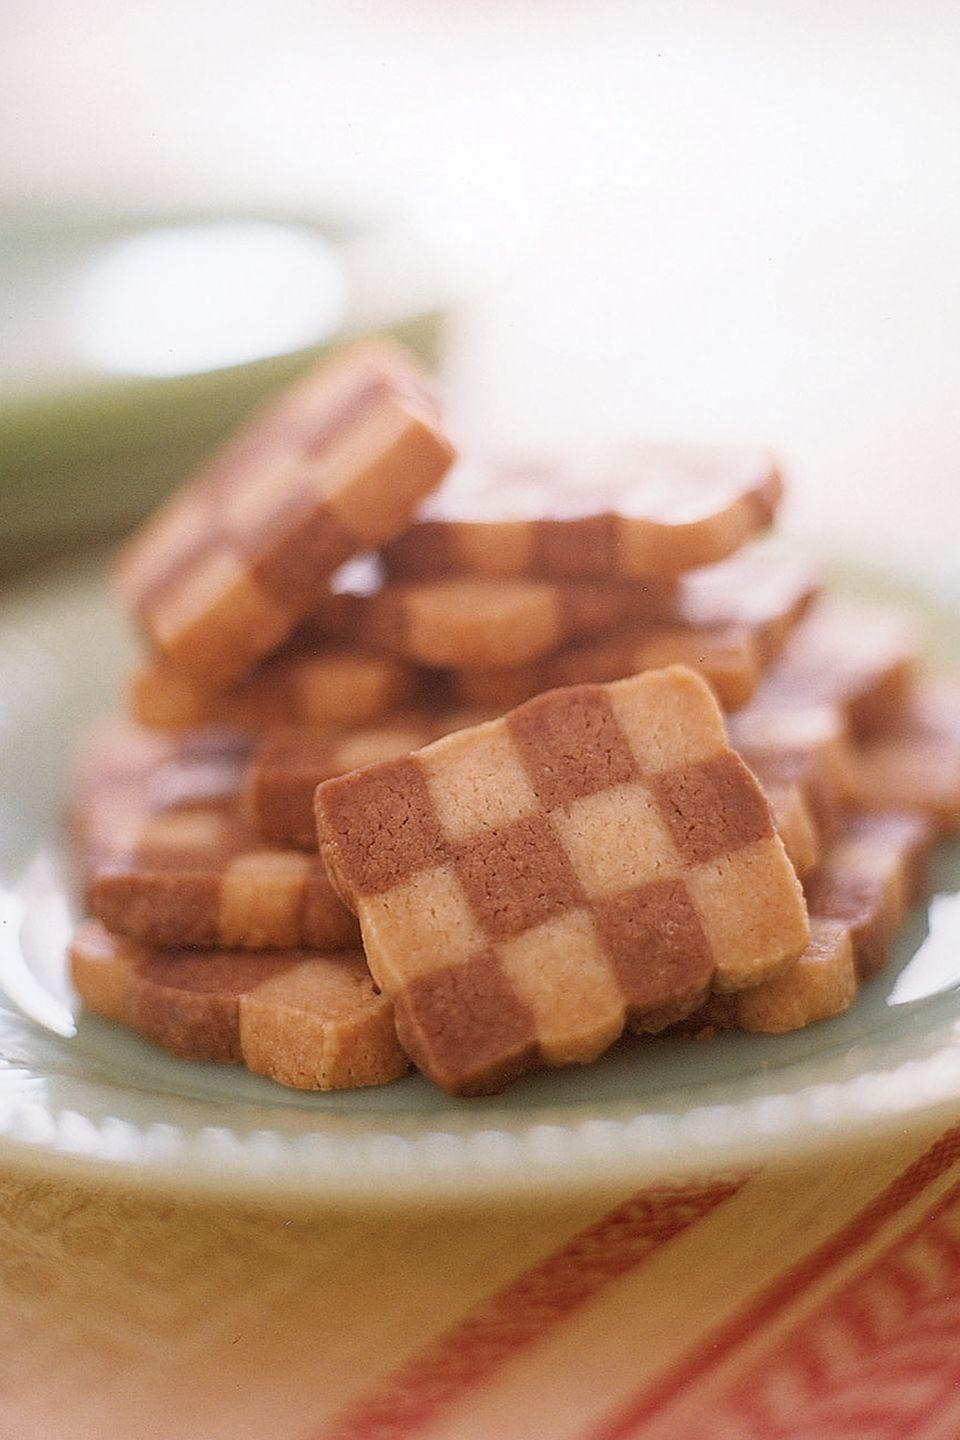 "<p>To create marbled cookies, shape vanilla and chocolate dough into ropes. Twist together for a swirled effect. Chill, slice, and bake.</p><p><a href=""https://www.countryliving.com/food-drinks/recipes/a1428/checkerboard-cookies-3544/"" rel=""nofollow noopener"" target=""_blank"" data-ylk=""slk:Get the recipe."" class=""link rapid-noclick-resp""><strong>Get the recipe.</strong></a></p>"